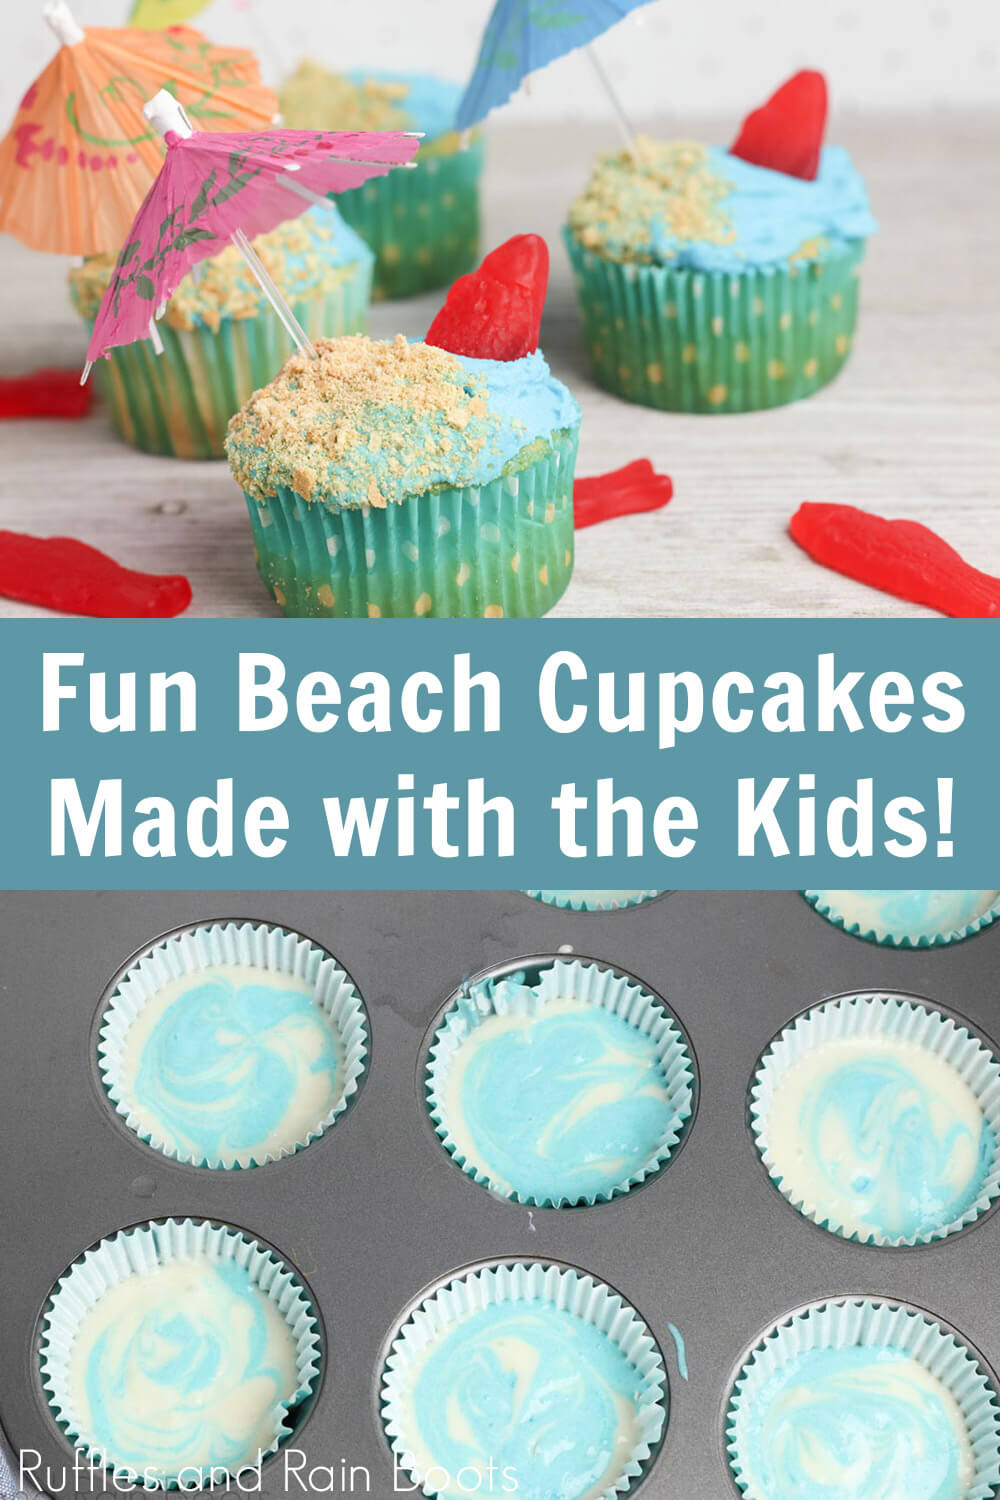 photo collage of fun beach cupcakes and swirled batter recipe with text which reads fun beach cupcakes made with the kids!